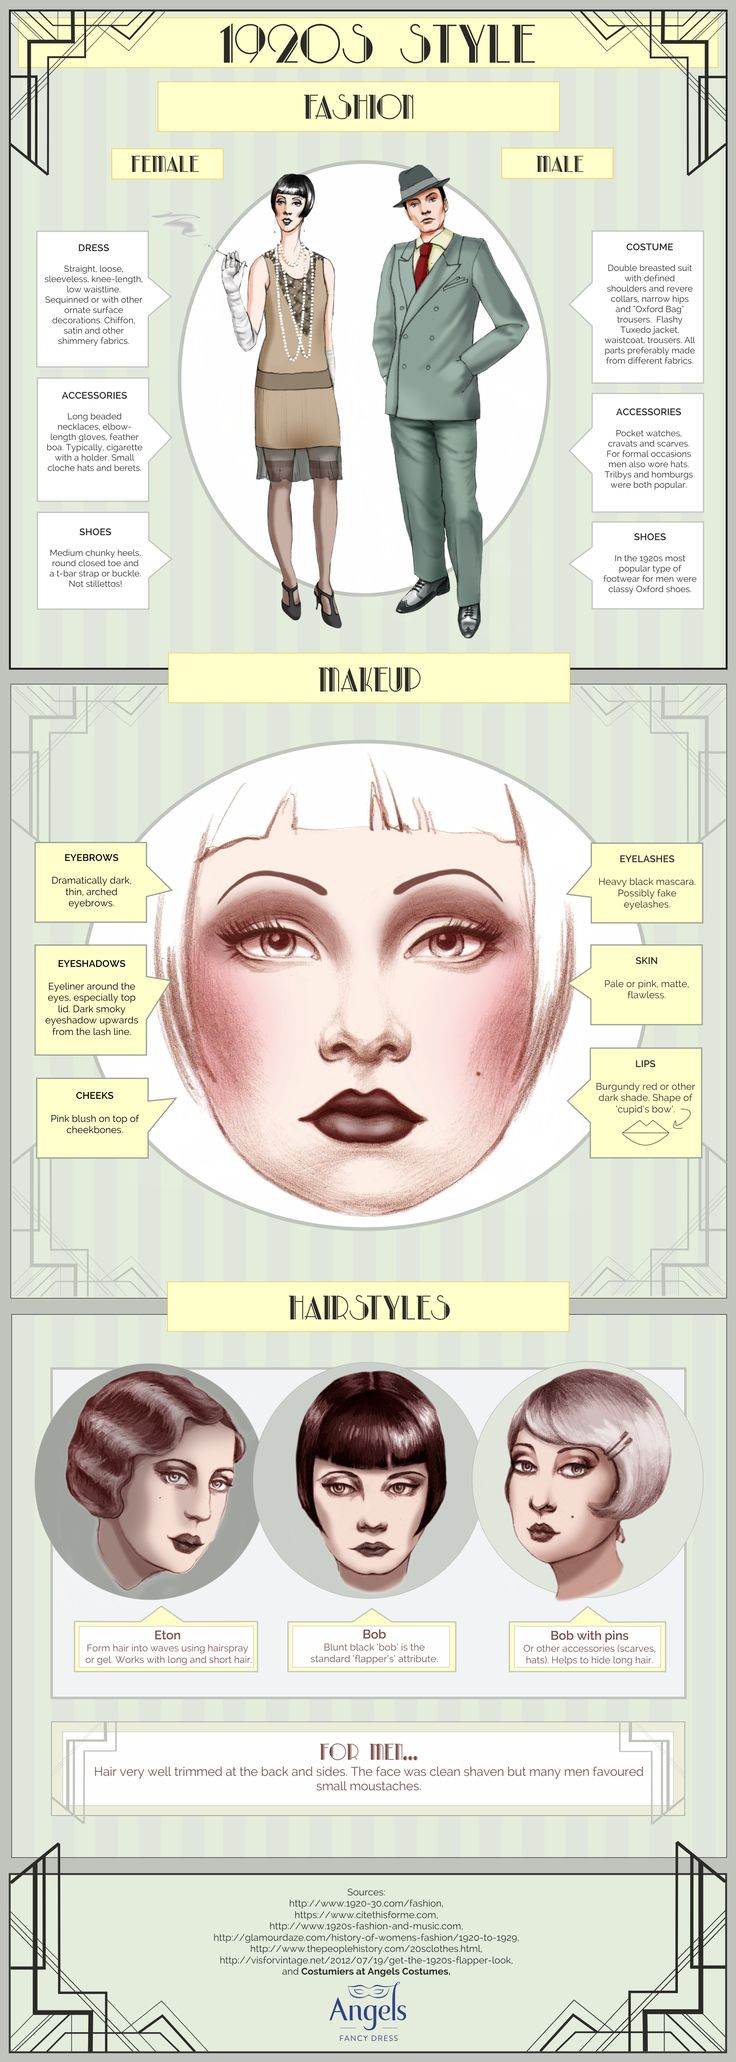 How To Get The Downton Abbey Look. Do you love Downton Abbey? The Great Gatsby? Pretty much all things 1920s? Then check out our 1920s style infographic.